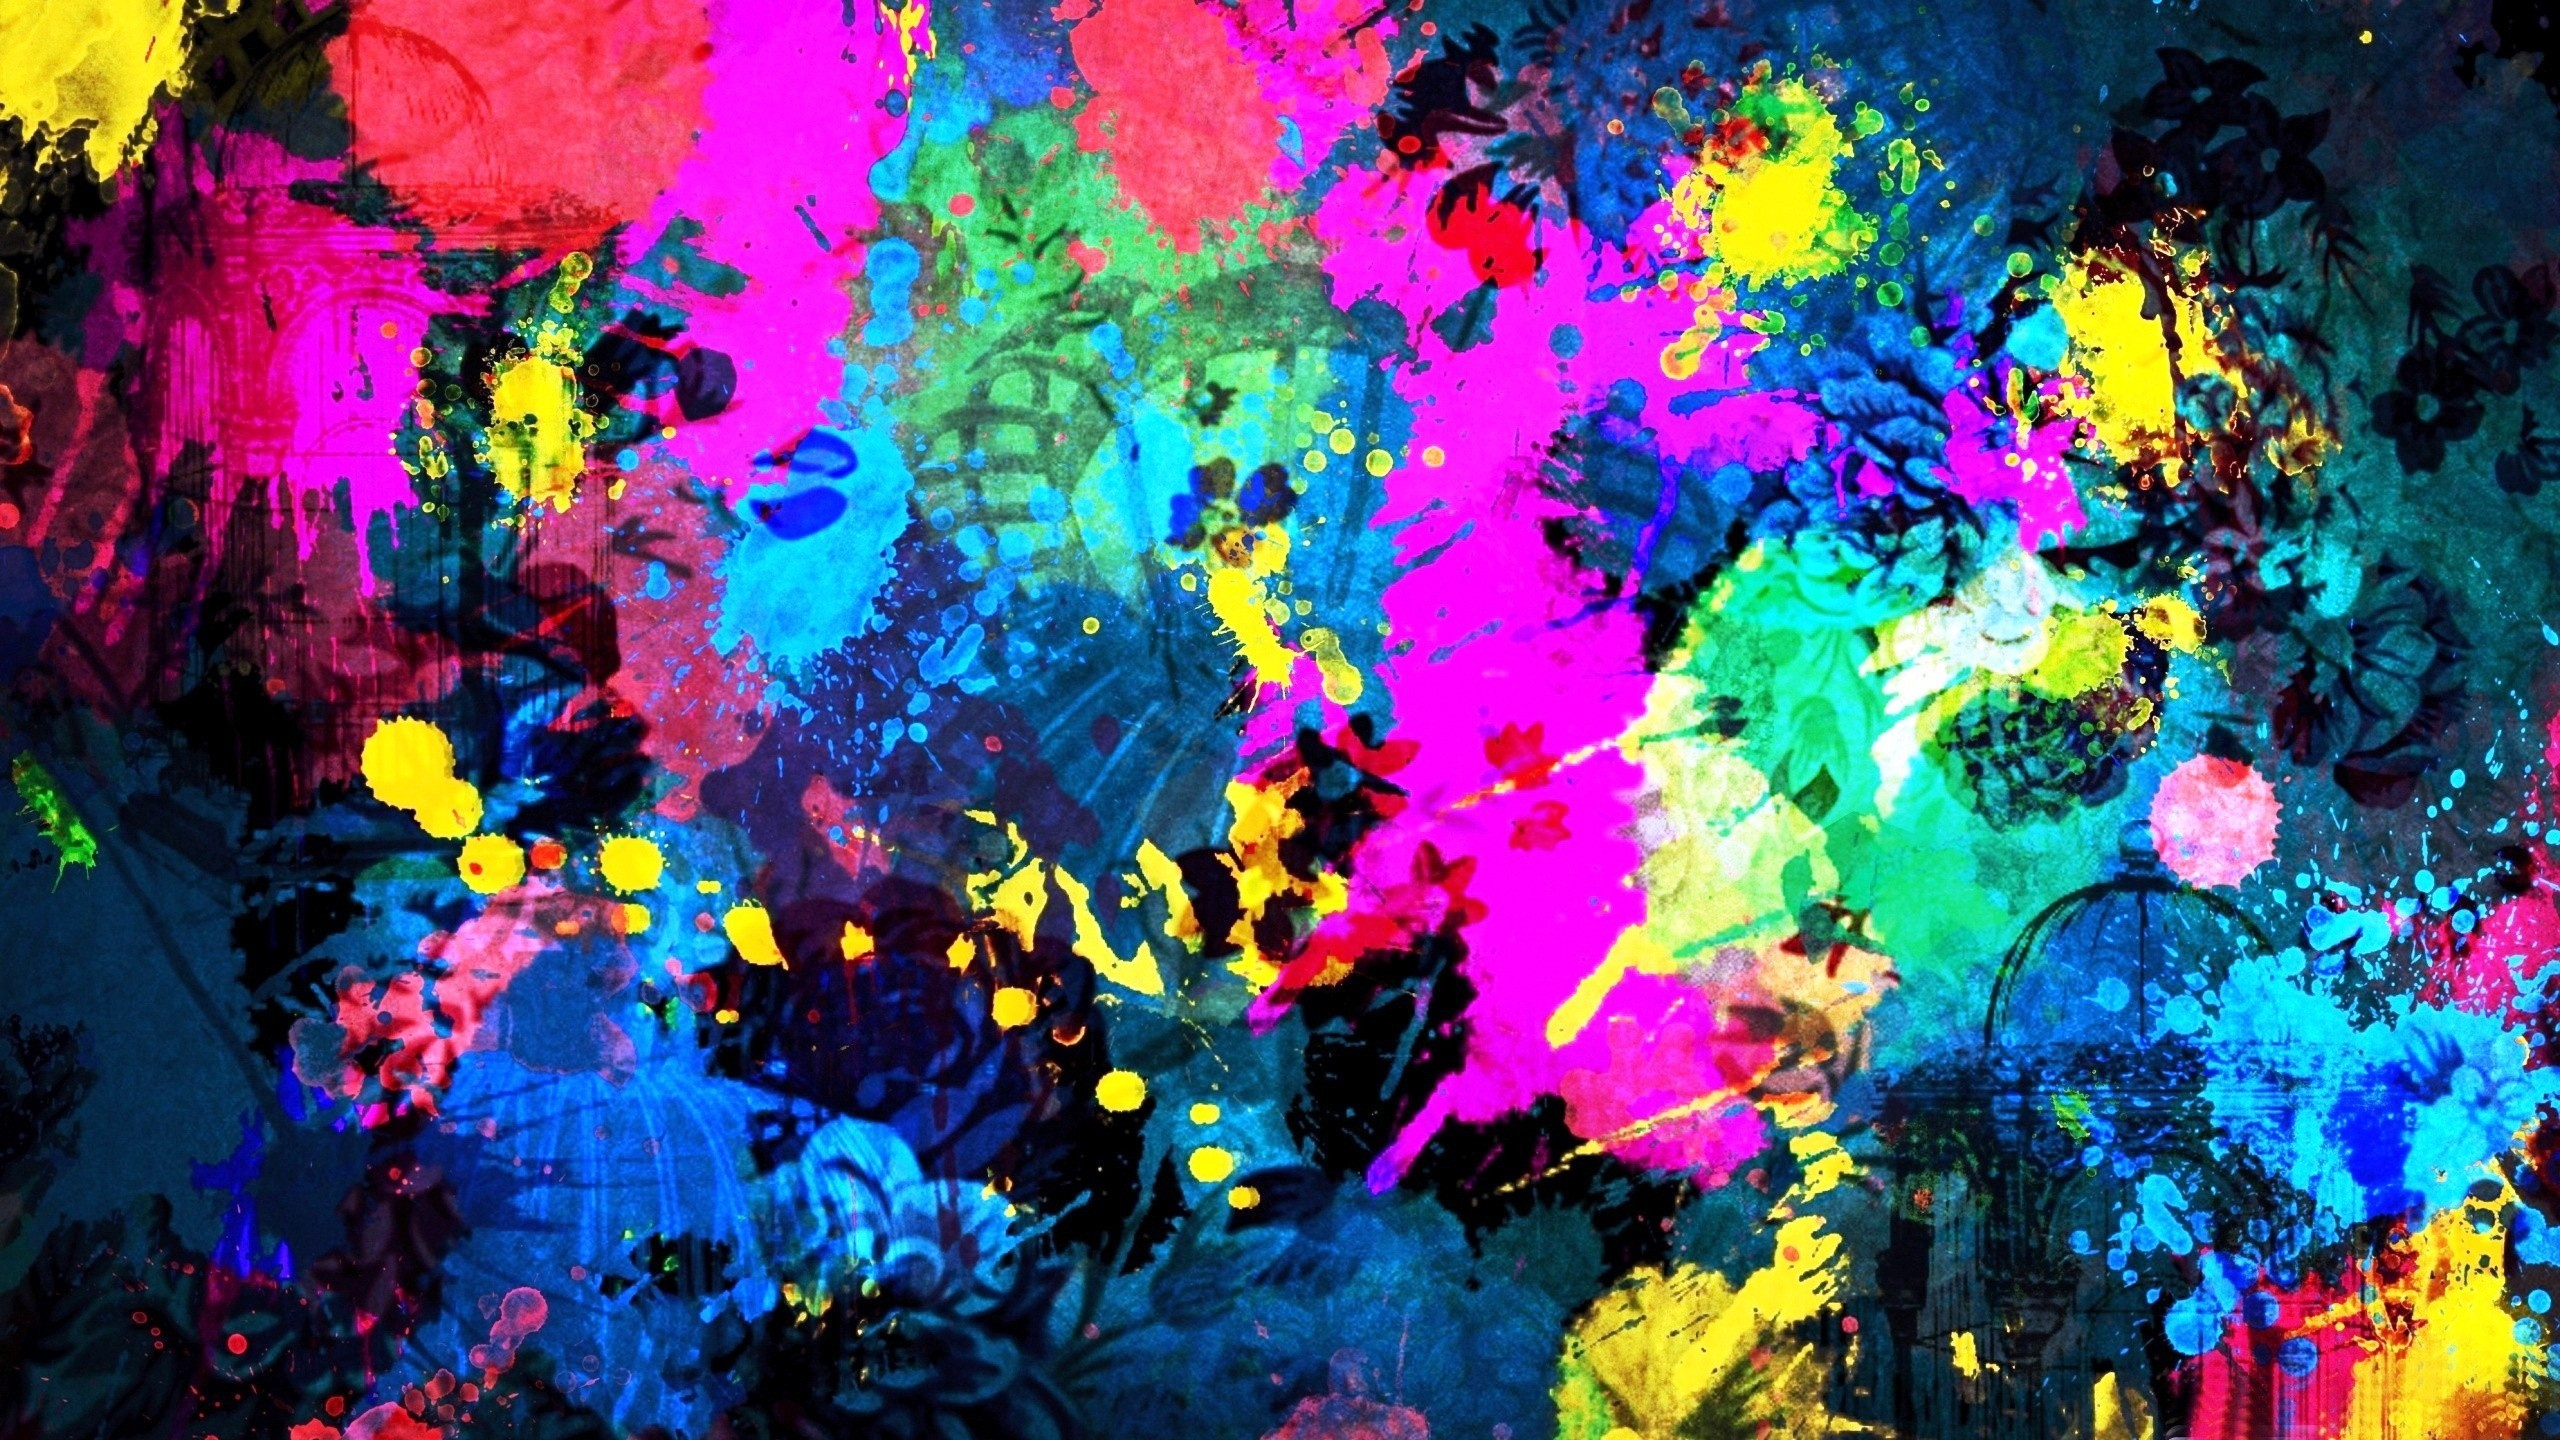 2560x1440 Abstract Art Wallpaper Hd 2853 Full HD Wallpaper Desktop - Res .